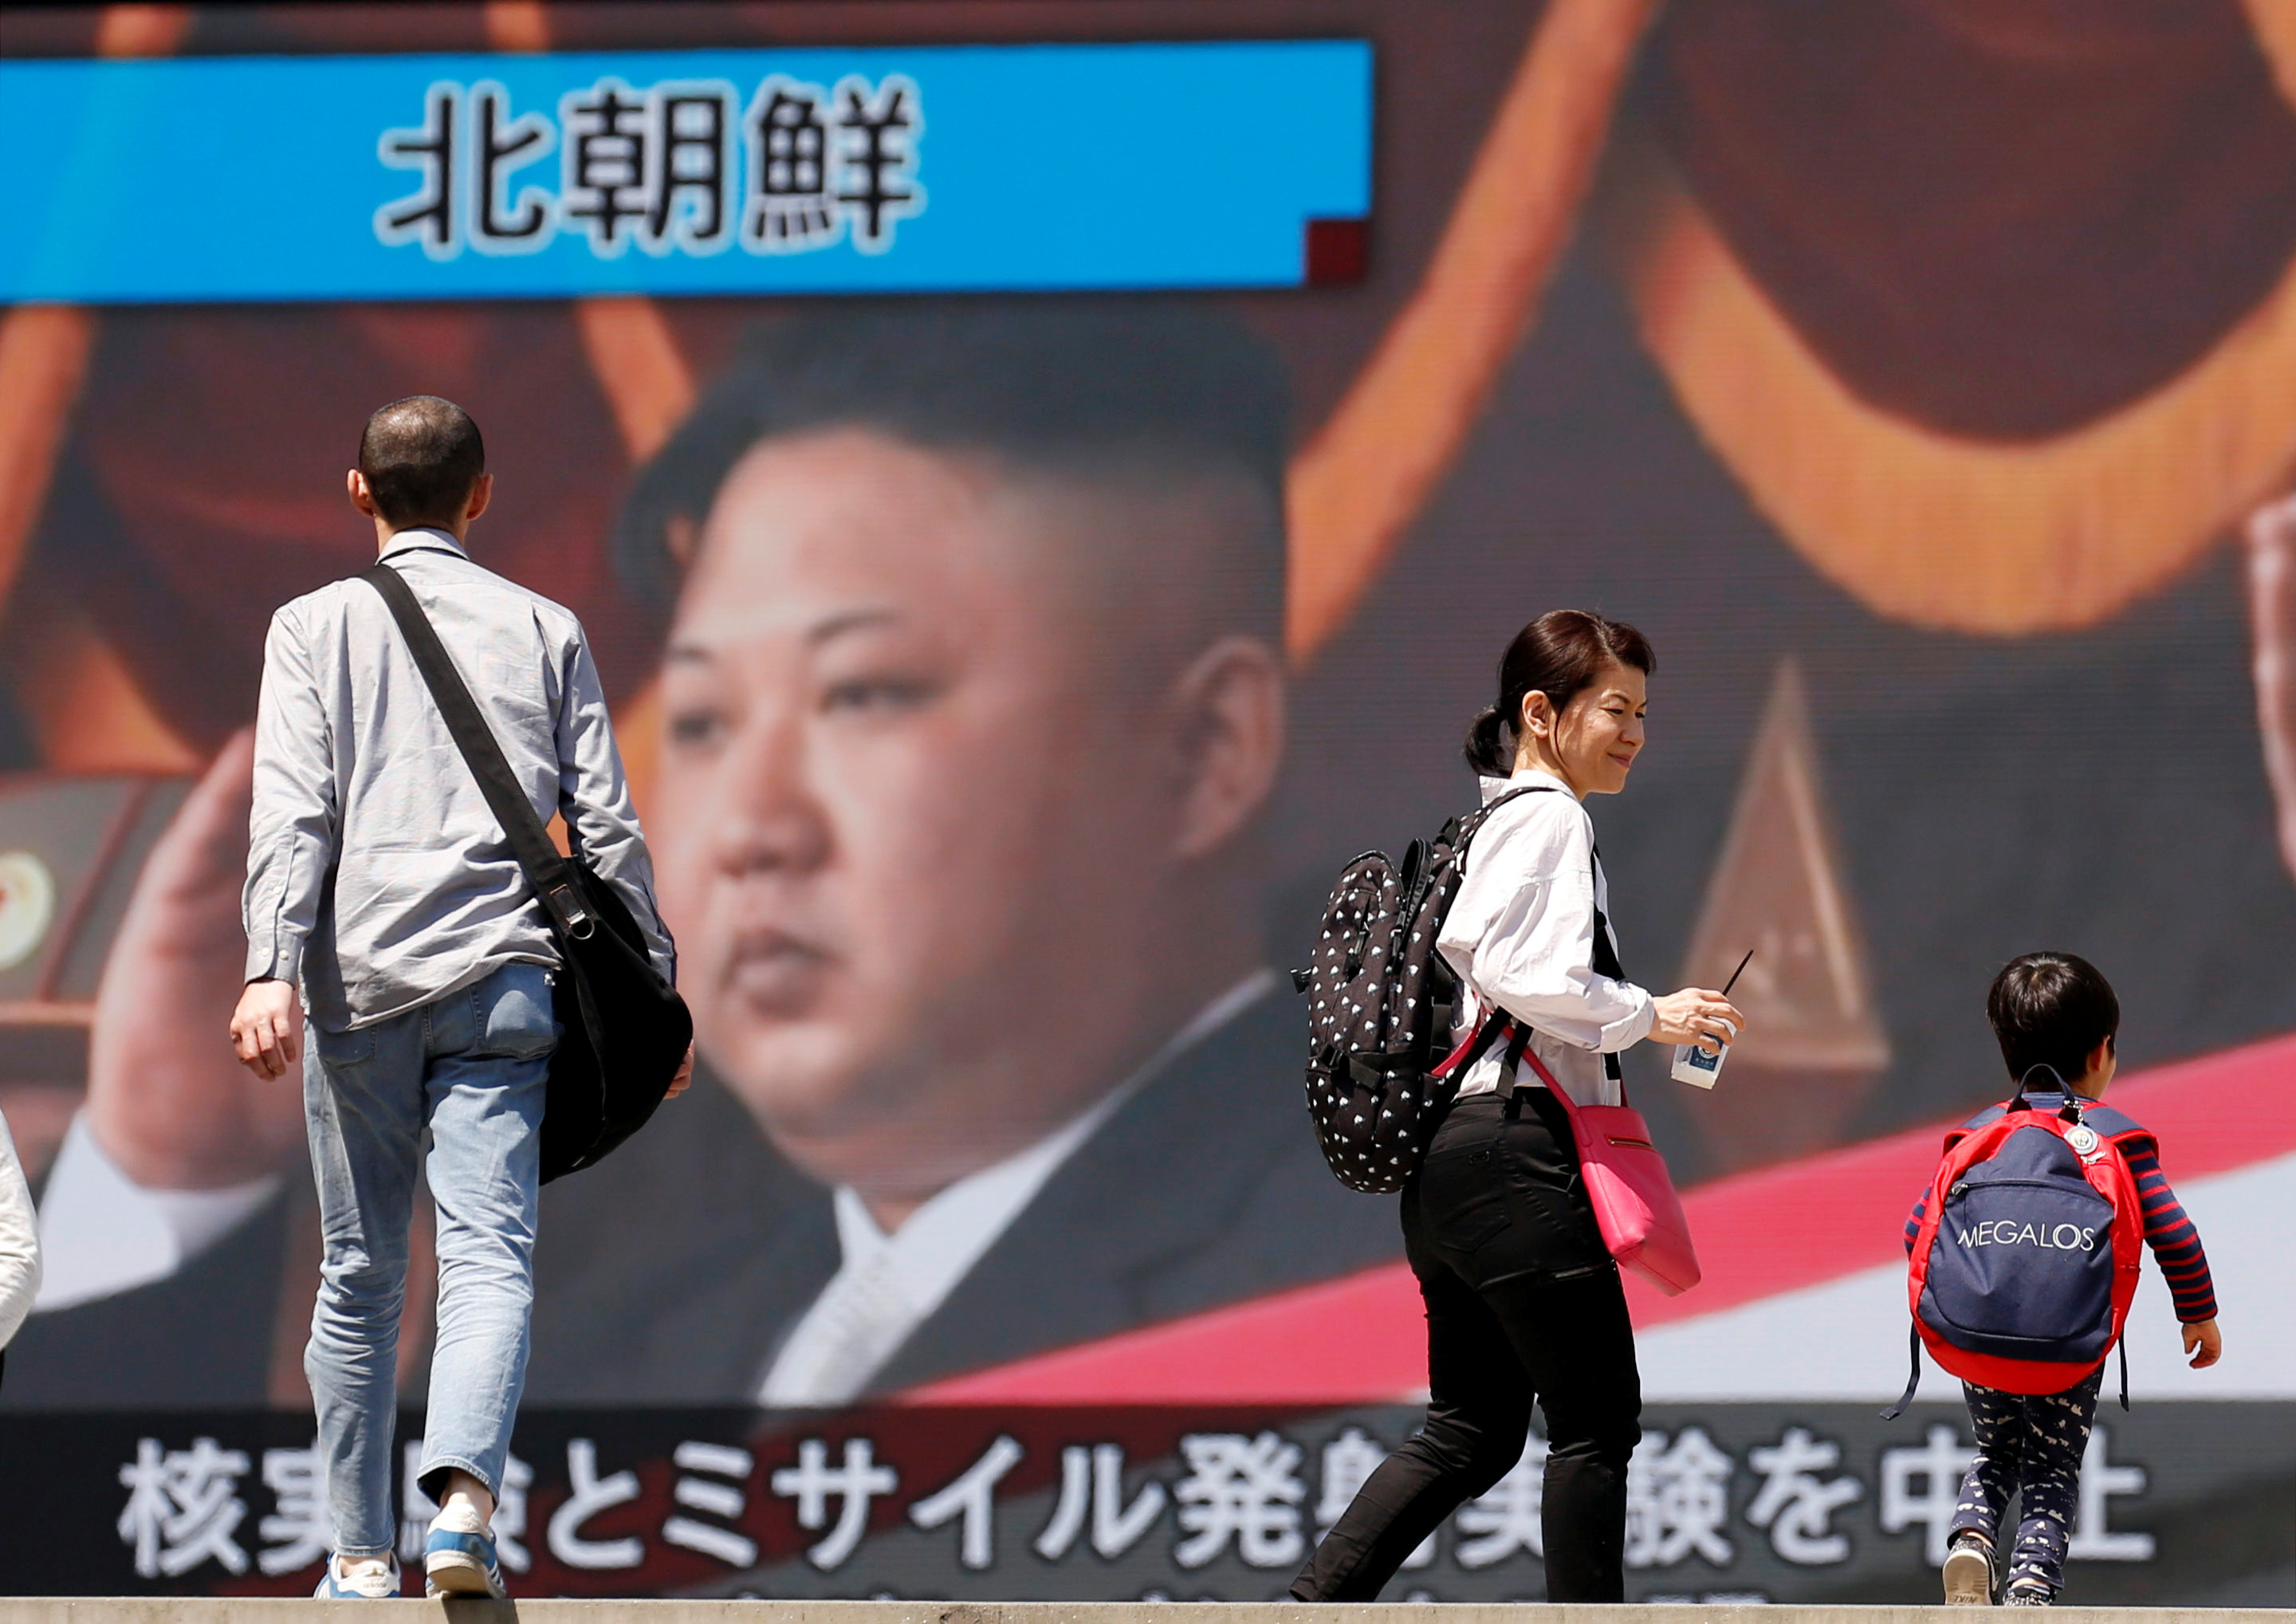 People walk past a street monitor showing North Korea's leader Kim Jong Un in a news report about North Korea's announcement, in Tokyo, Japan, April 21, 2018. REUTERS/Toru Hanai